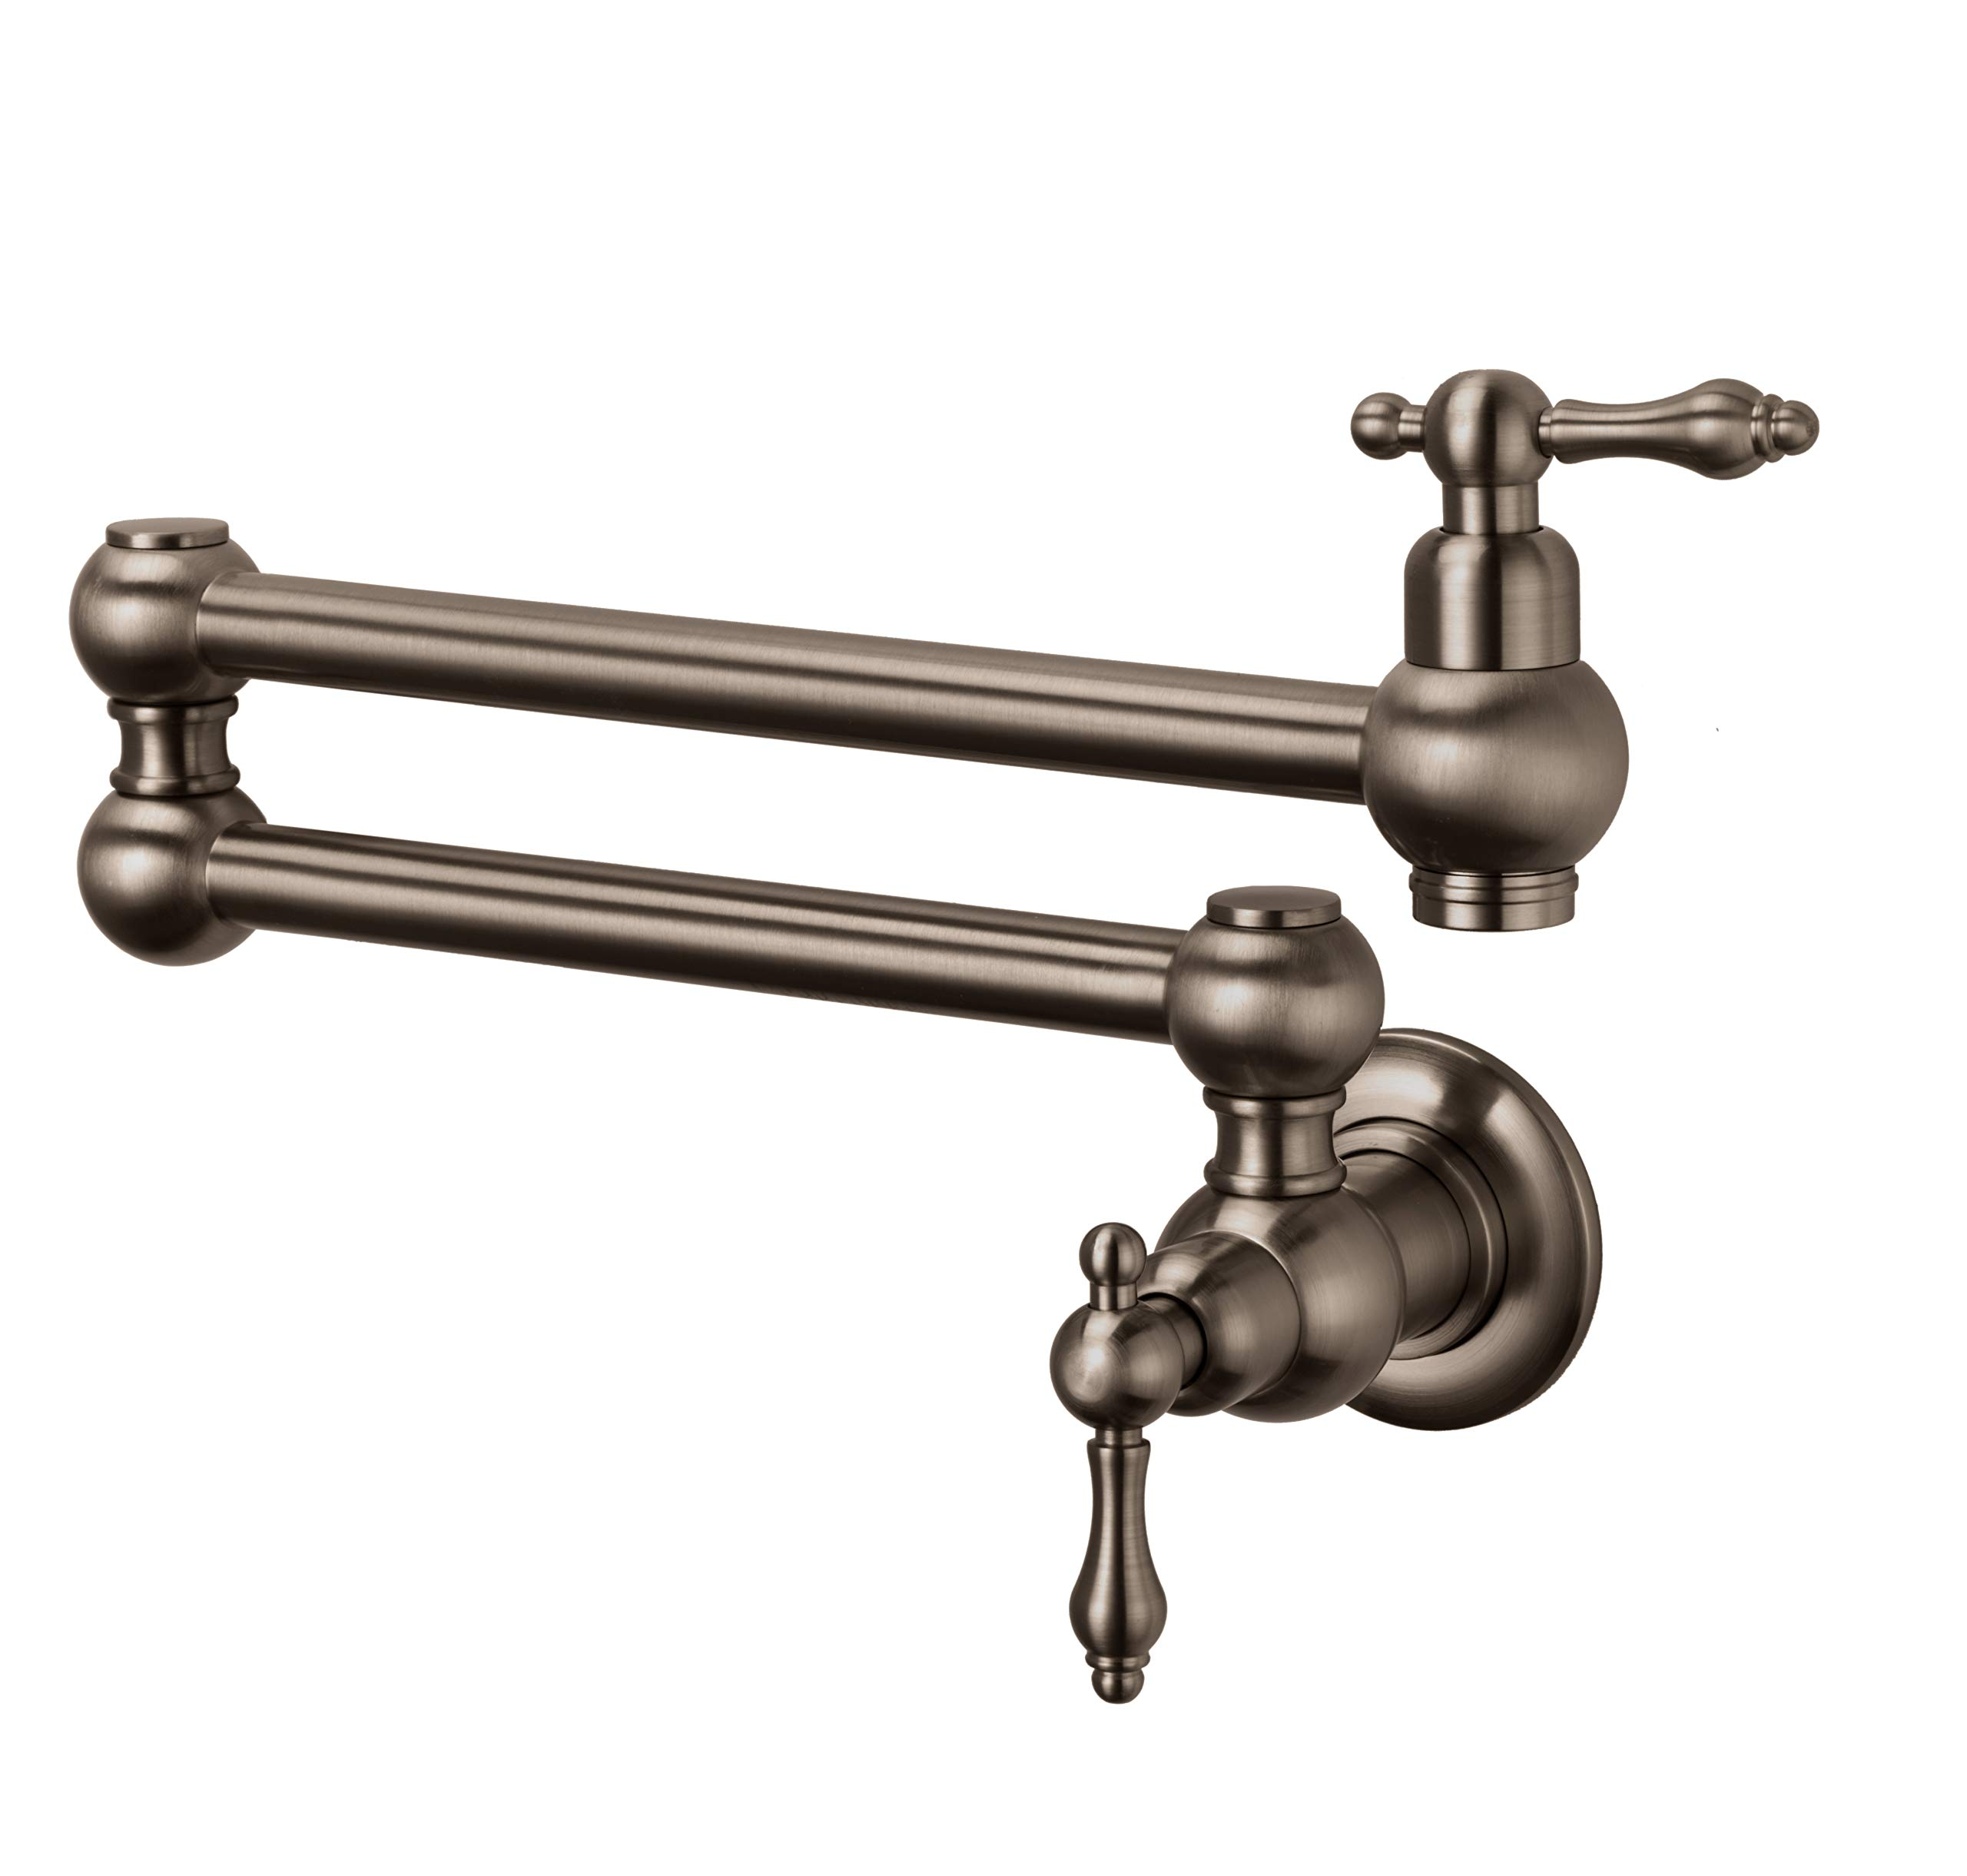 Wall Mounted Pot Filler Faucet (Classic, Aged Bronze)